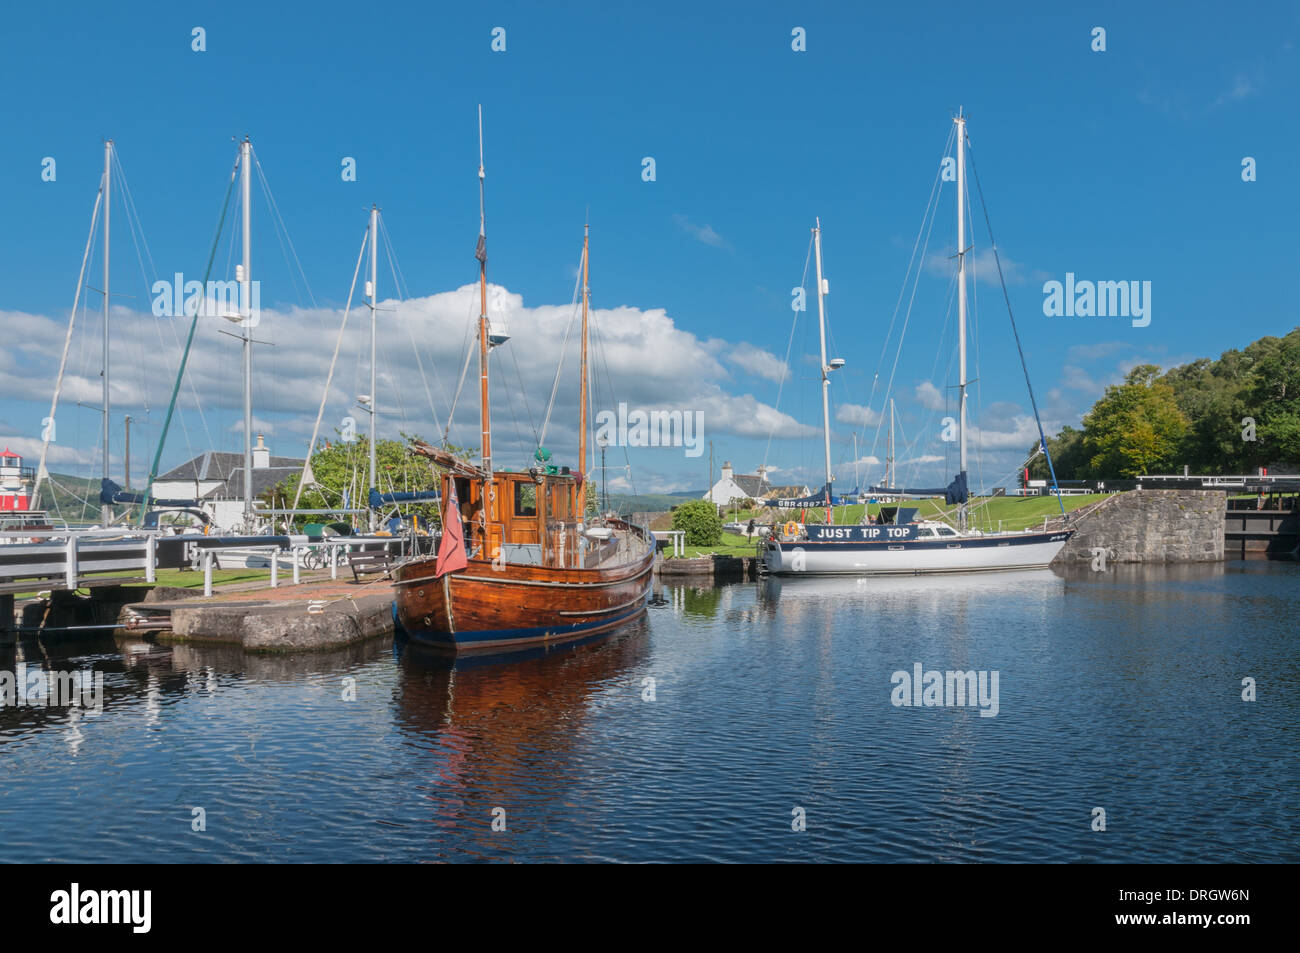 Boats and yachts in Crinan Canal Crinan Argyll & Bute Scotland - Stock Image